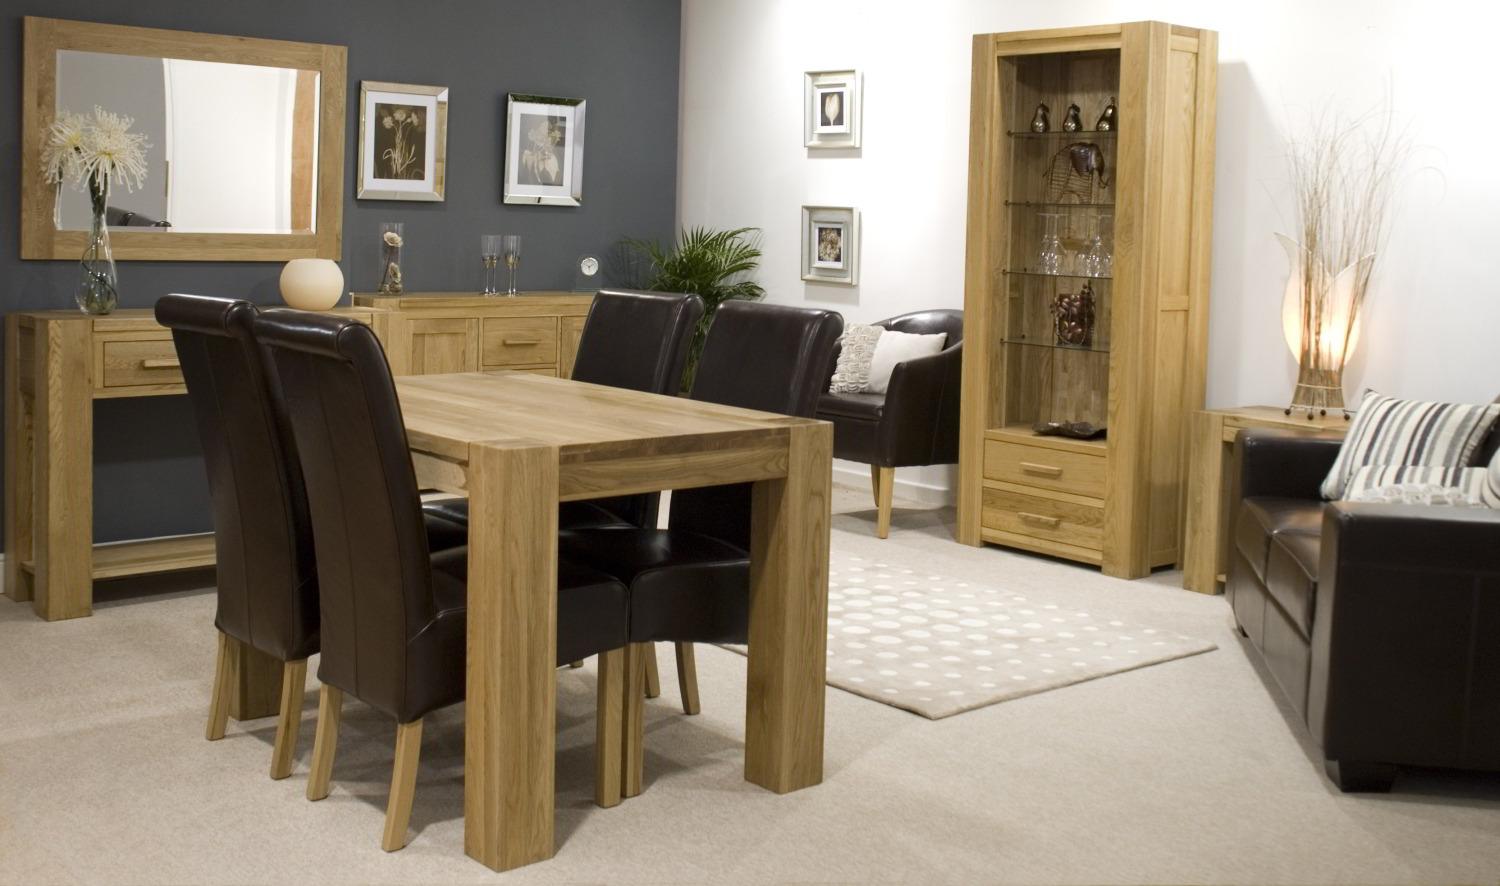 Oak Living Room Ideas Pemberton Solid Oak Furniture Small Living Room Office